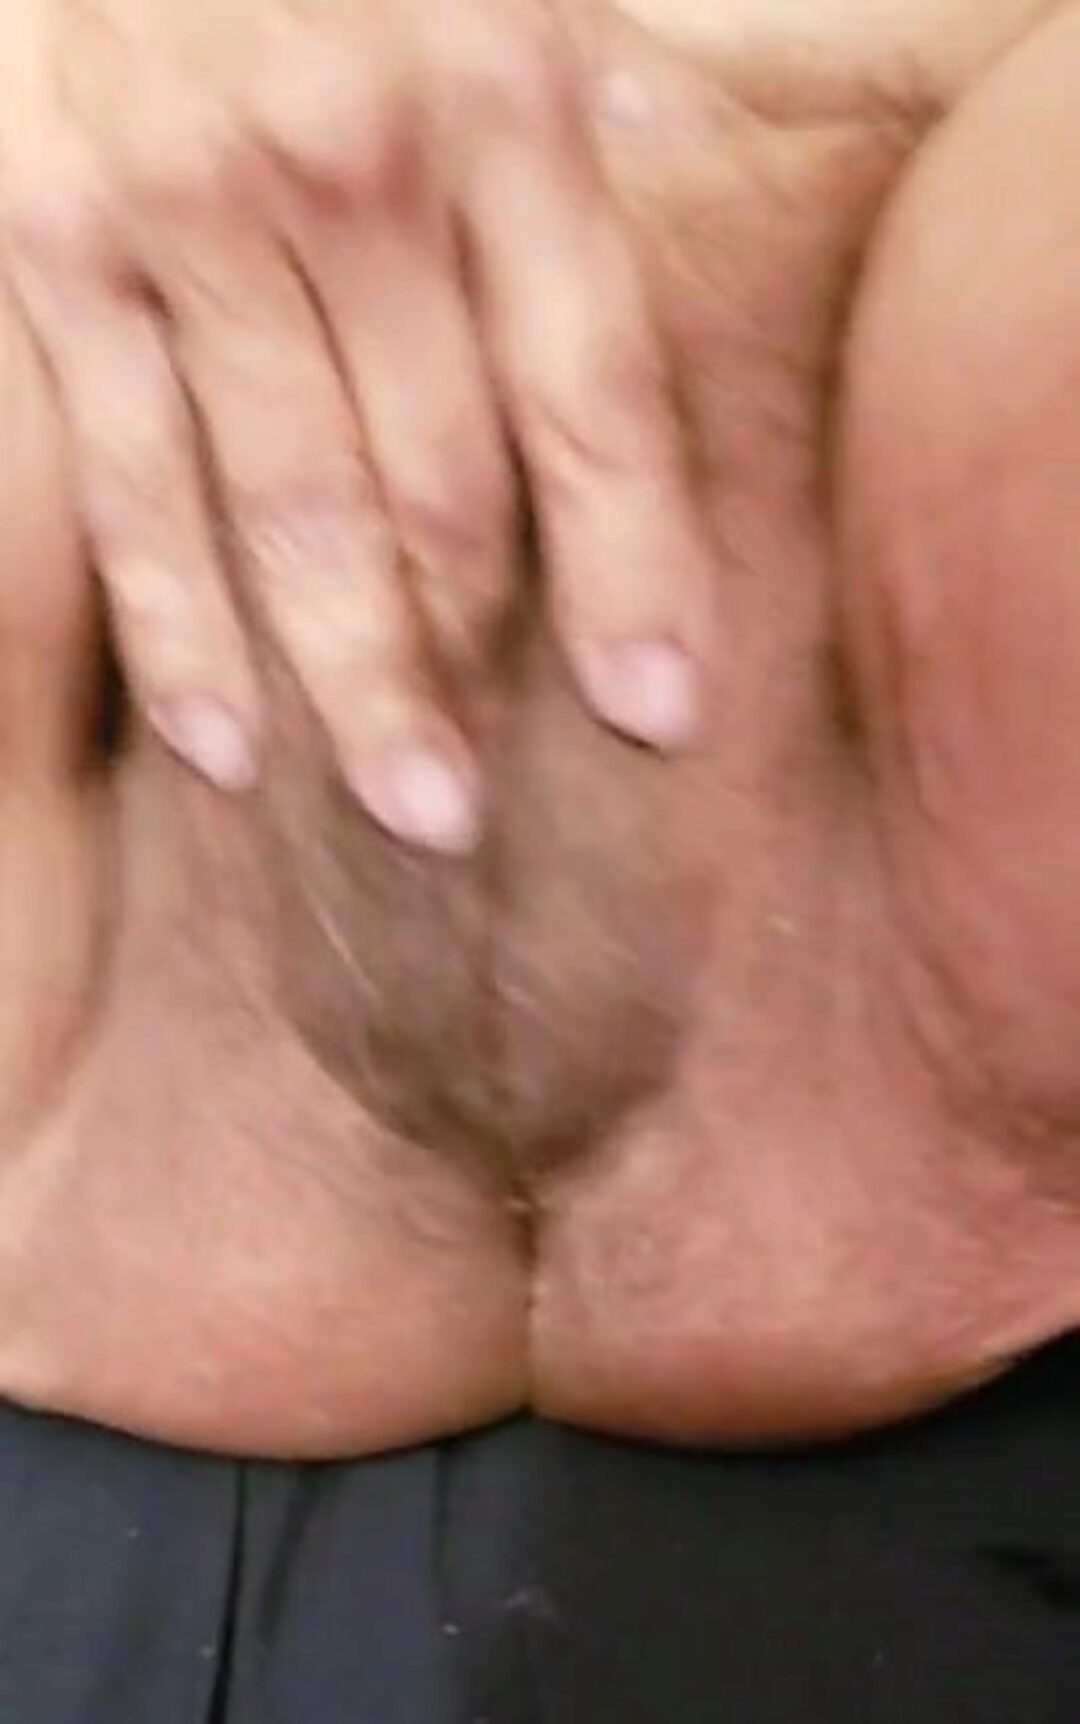 Playing with my big older curly cookie You like this clip Please comment.  Love naughty comments. I will post more if I acquire a lot of visits